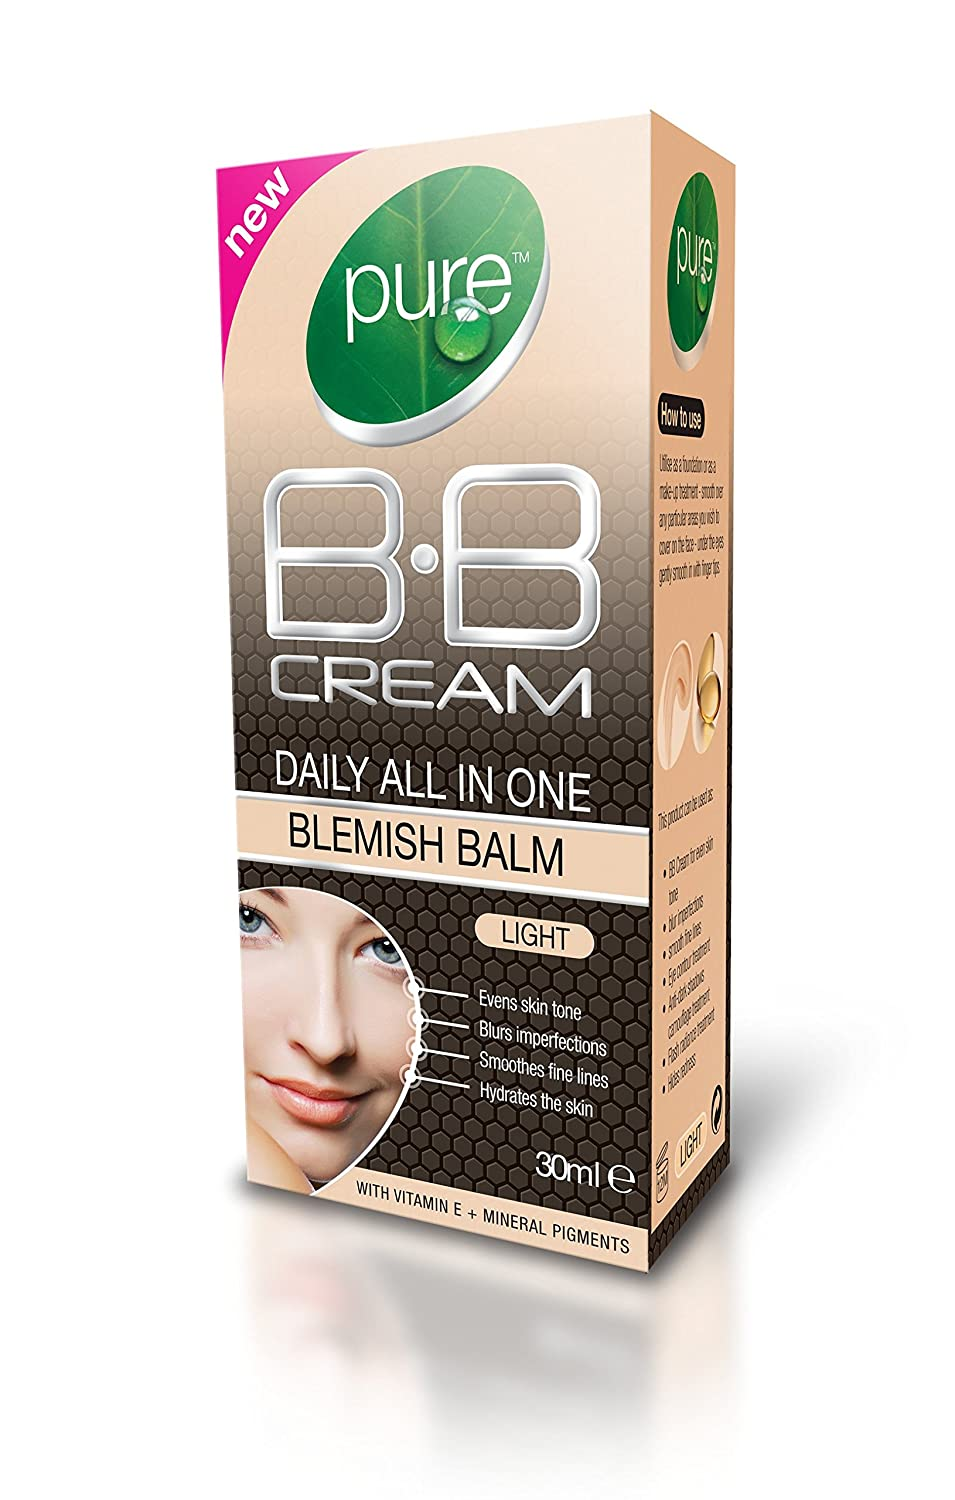 Pure BB Cream Daily all in one Blemish Balm Light 30ml Sublyme Cosmetics Ltd M1135